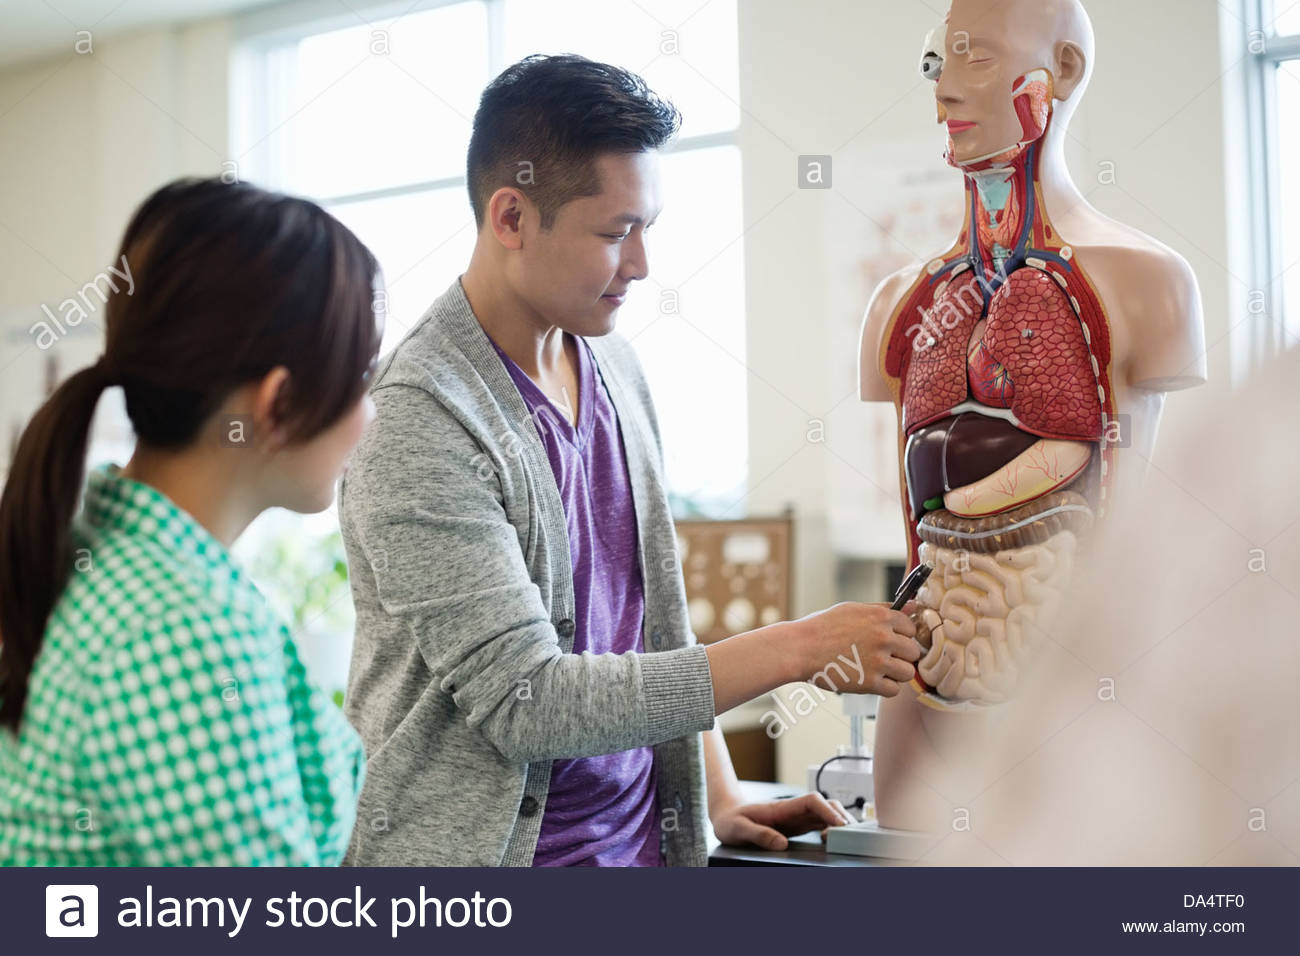 Students Learning Anatomy In College Science Lab Stock Photo